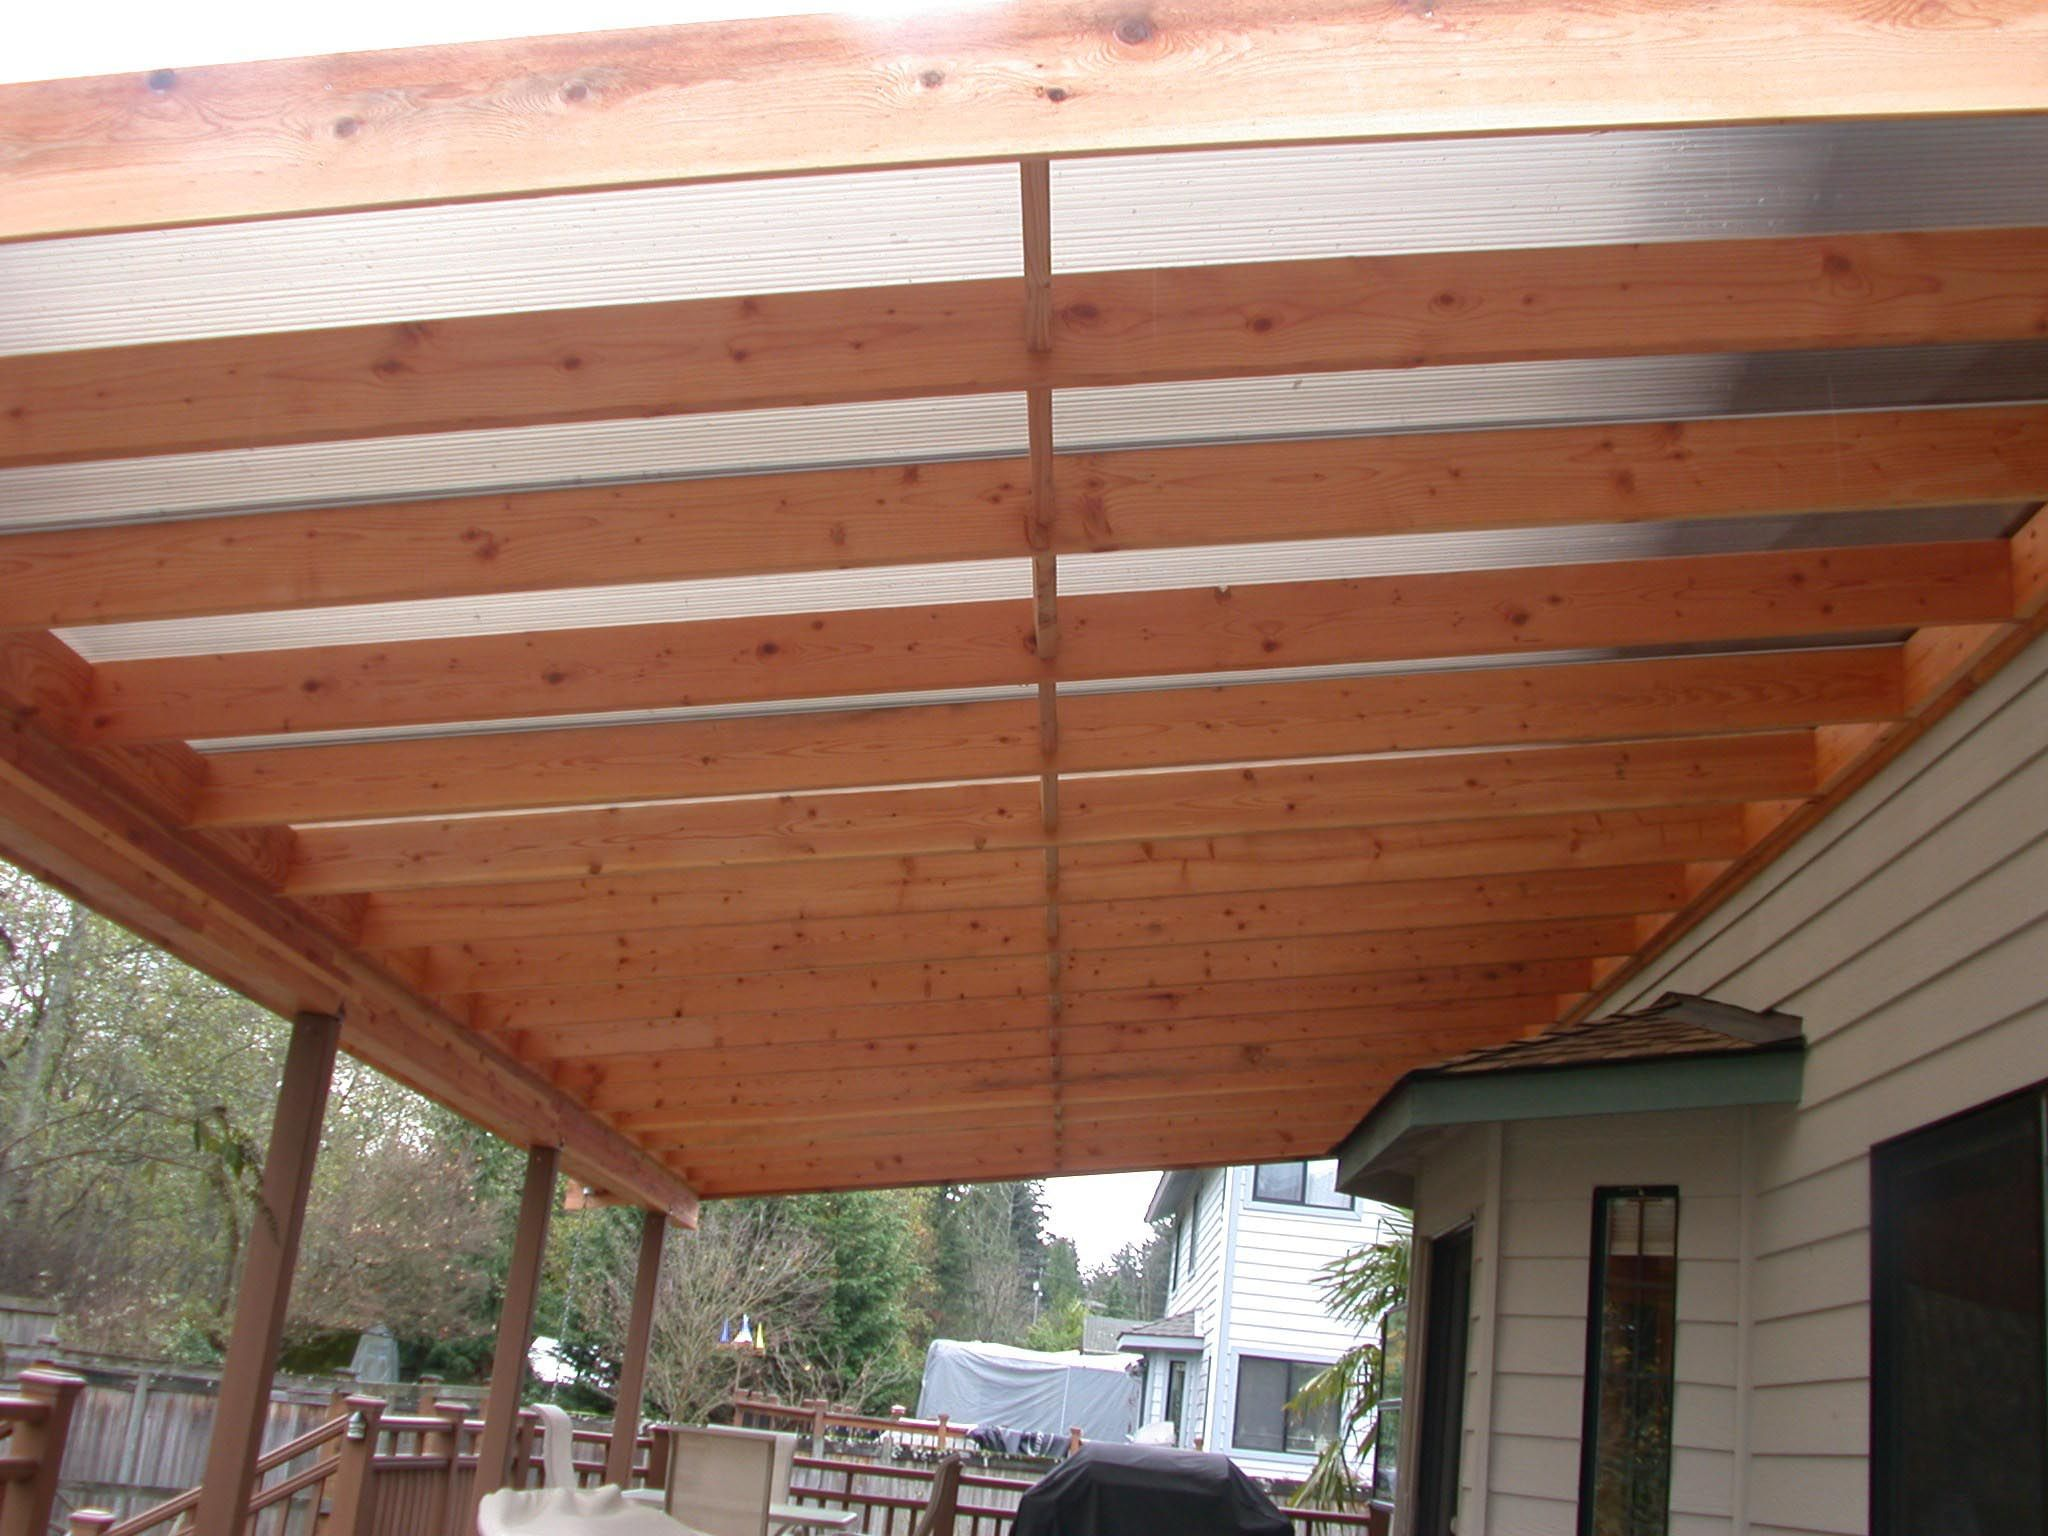 Fiberglass Roof Panels For Pergola Porch Roof Design Fiberglass Roof Panels Pergola With Roof